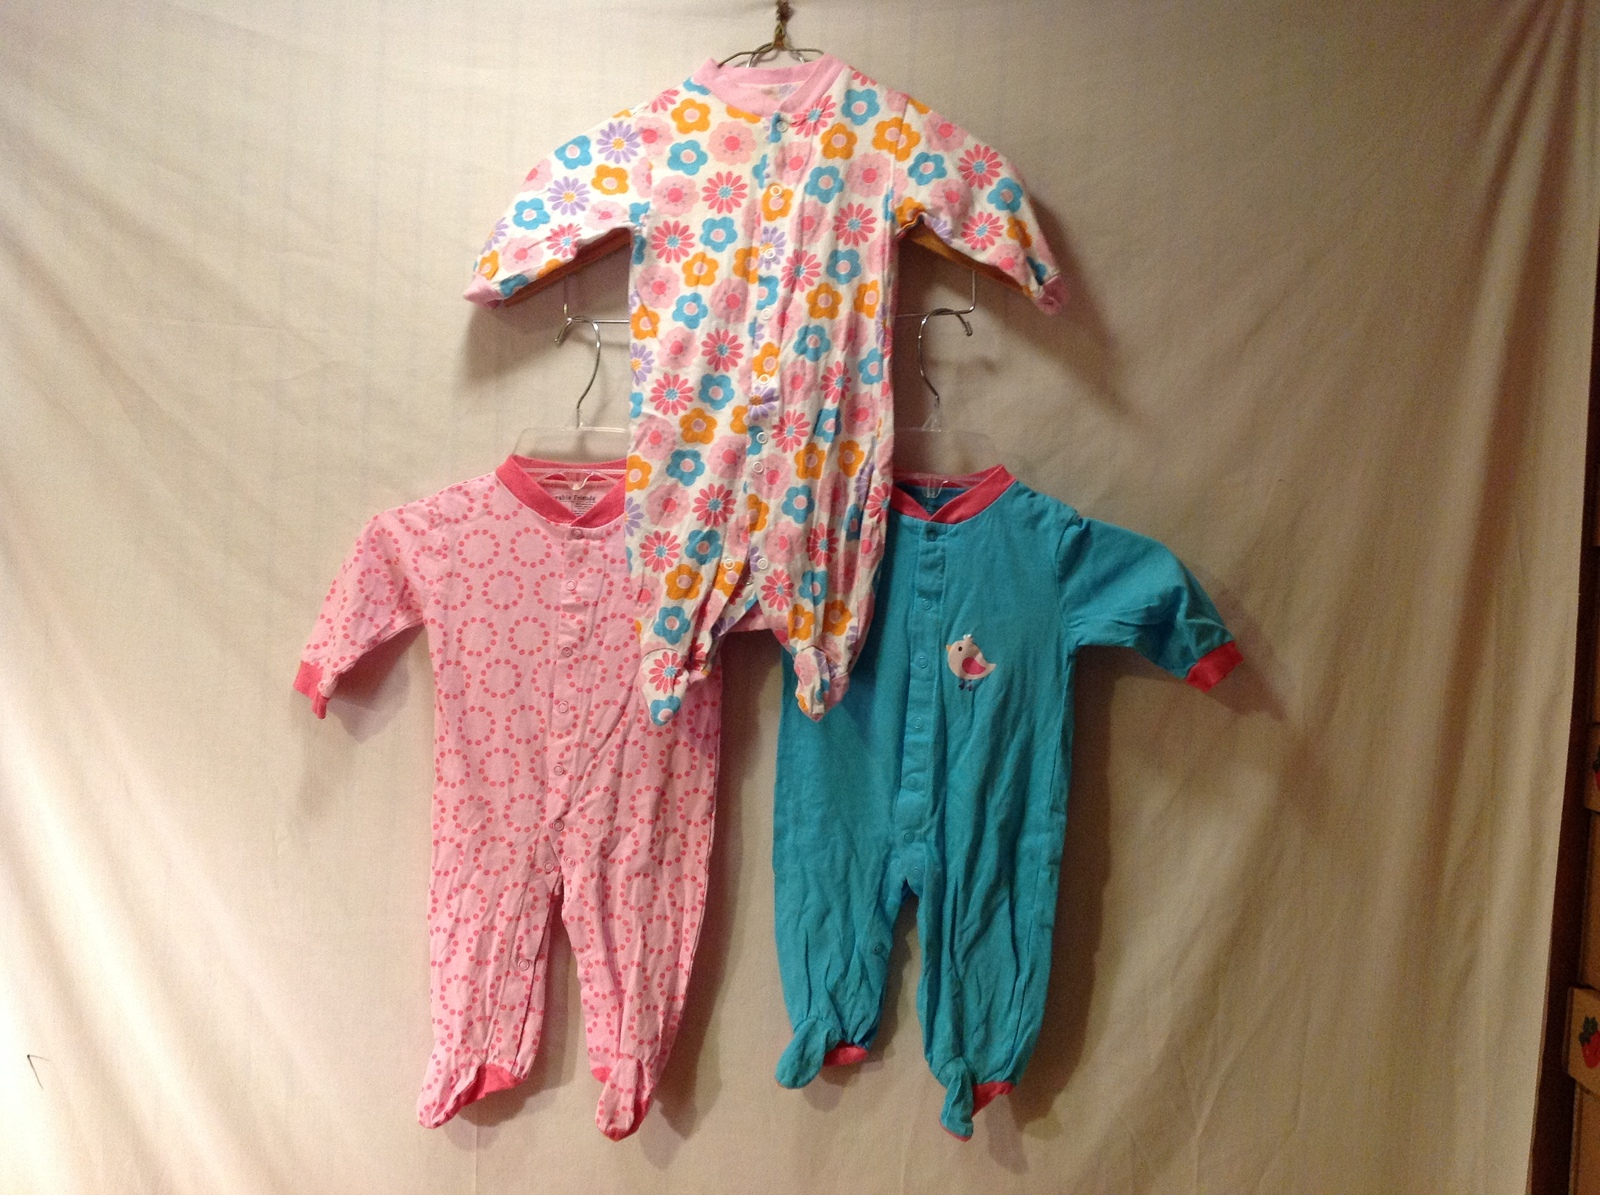 Loveable Friends Baby Feetie Outfits Set of 3, Size 3-6 Months